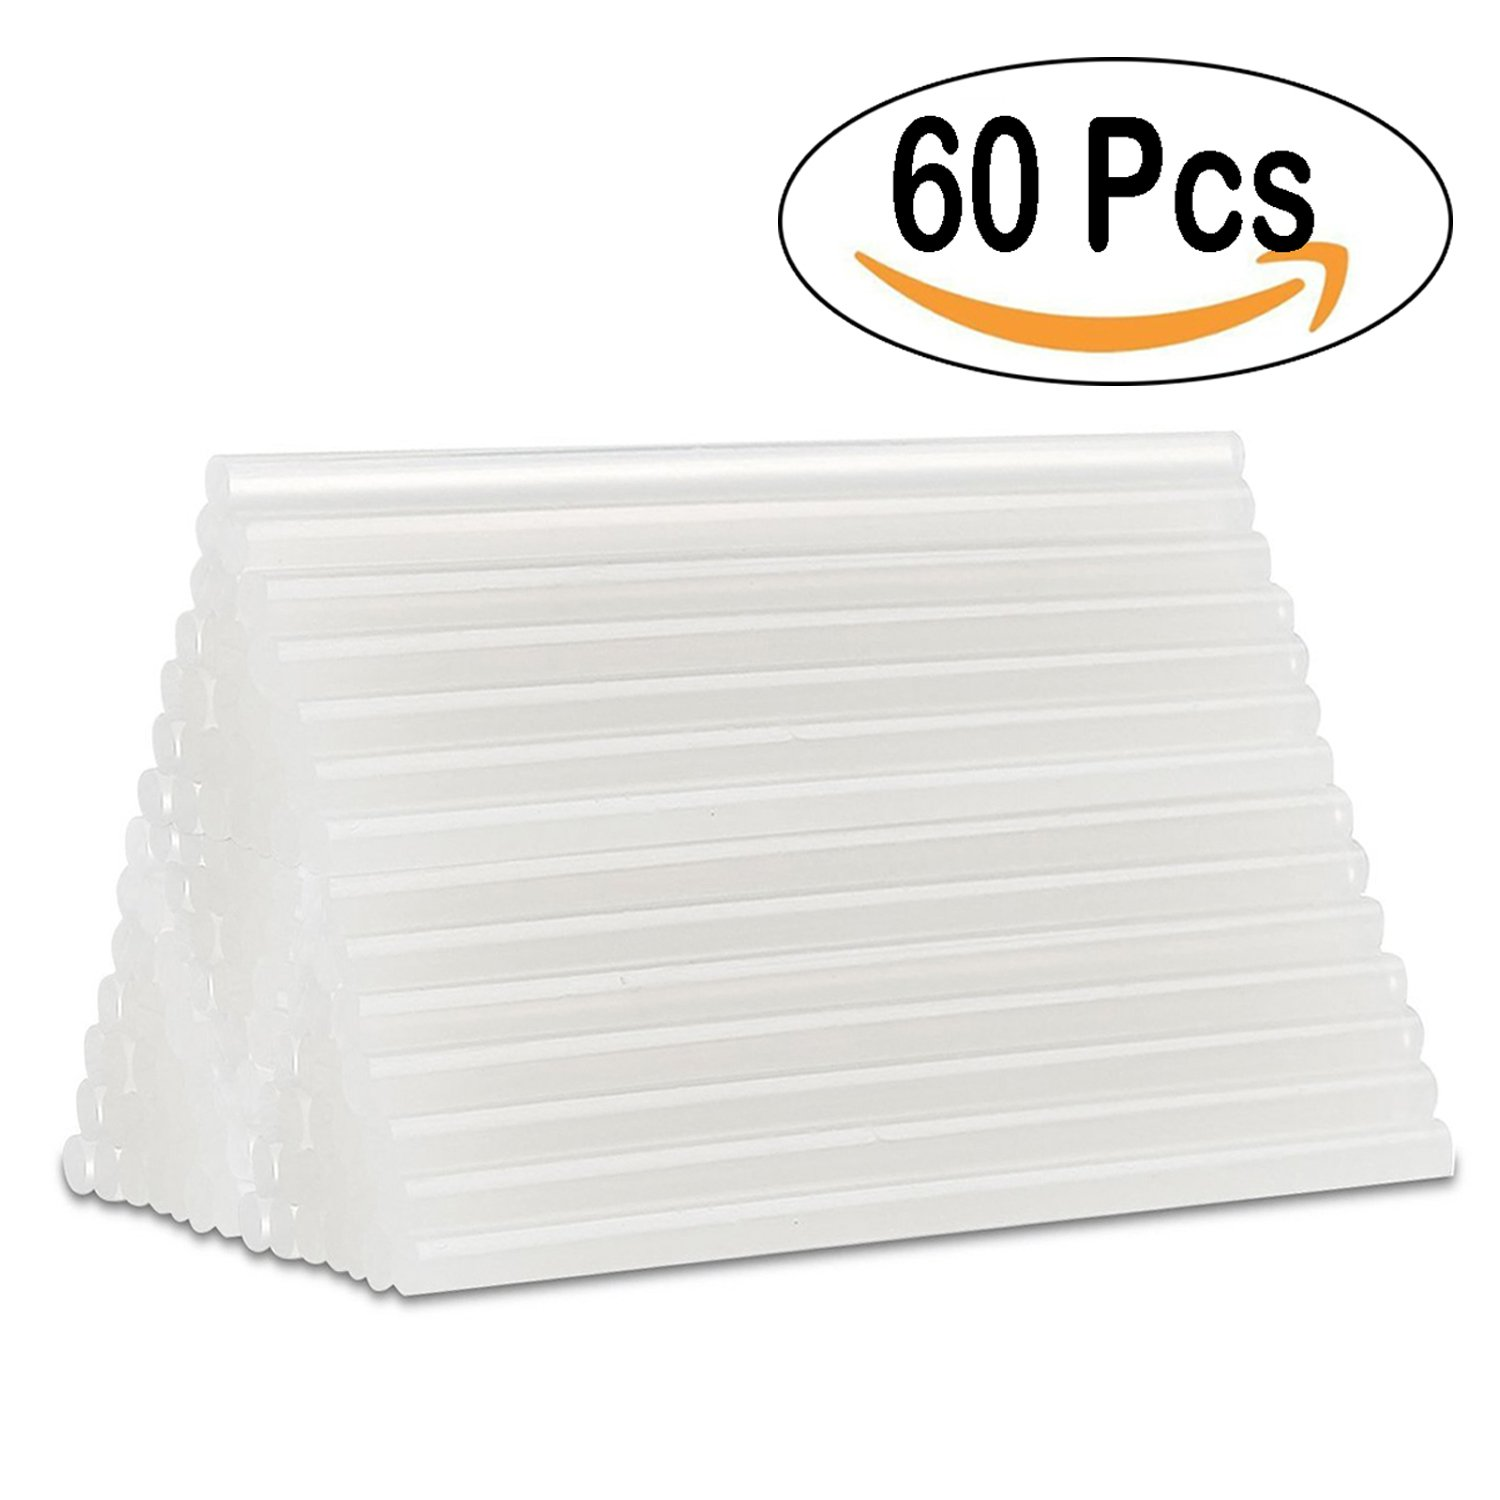 Aookey 60pcs Stick à Colle Thermofusible pour Mini Pistolet à Colle, Hobby Crafting, Travail du Bois, Plastique, Tissu, Céramique 100 mm x 7 mm (Transparent) Céramique 100 mm x 7 mm (Transparent)